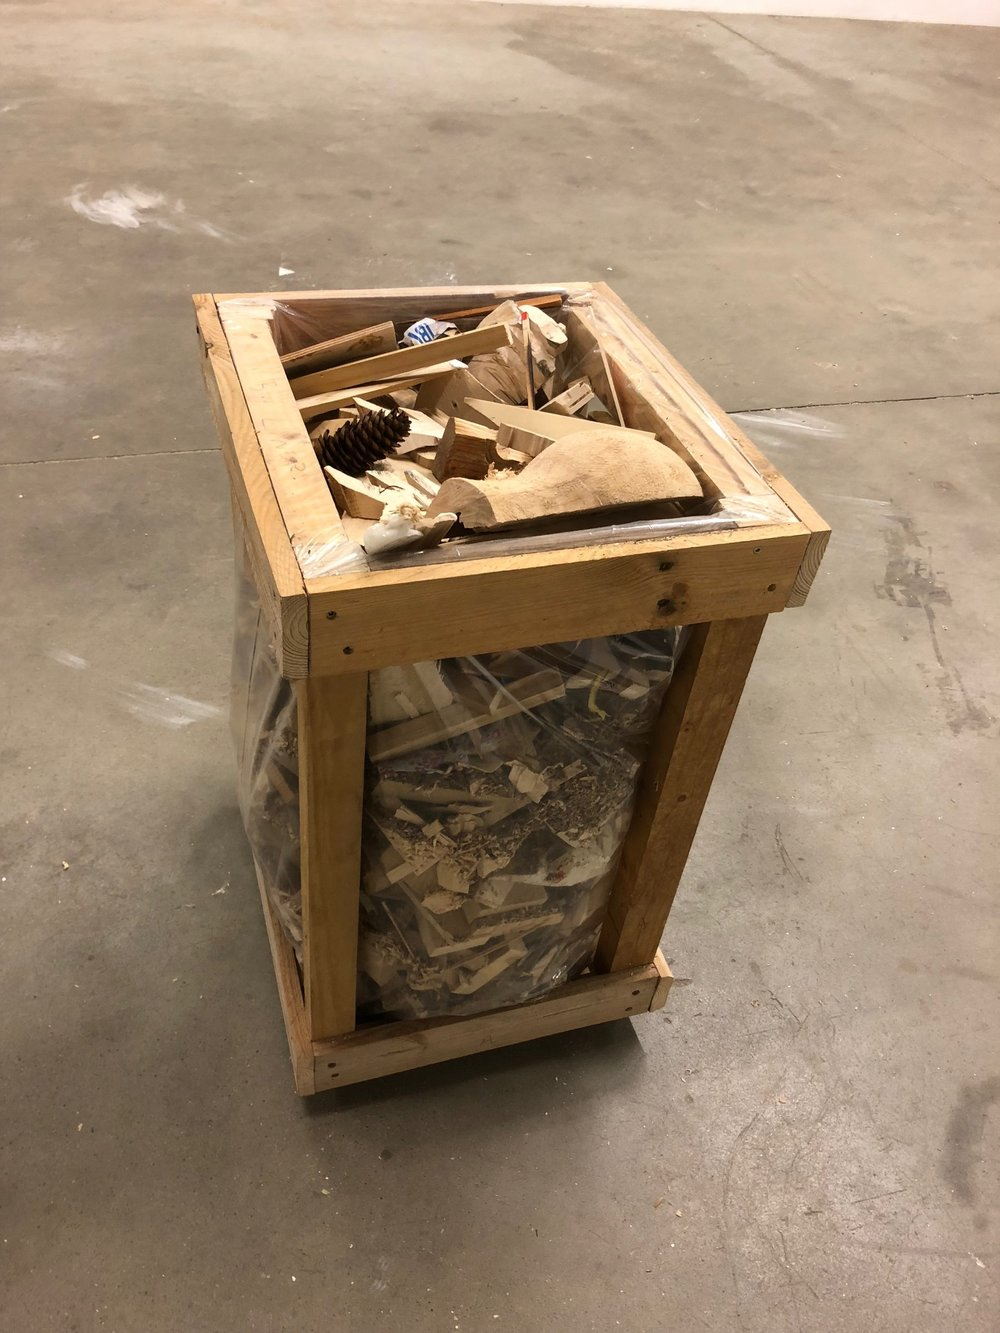 Finbar Ward, Shed /Shed (Arnold), 2018, reclaimed timber, plastic bag, waste material from the studios of Aron Demetz, Arnold Holzknecht and Walter Moroder screws, 73 x 48 x 44 cm